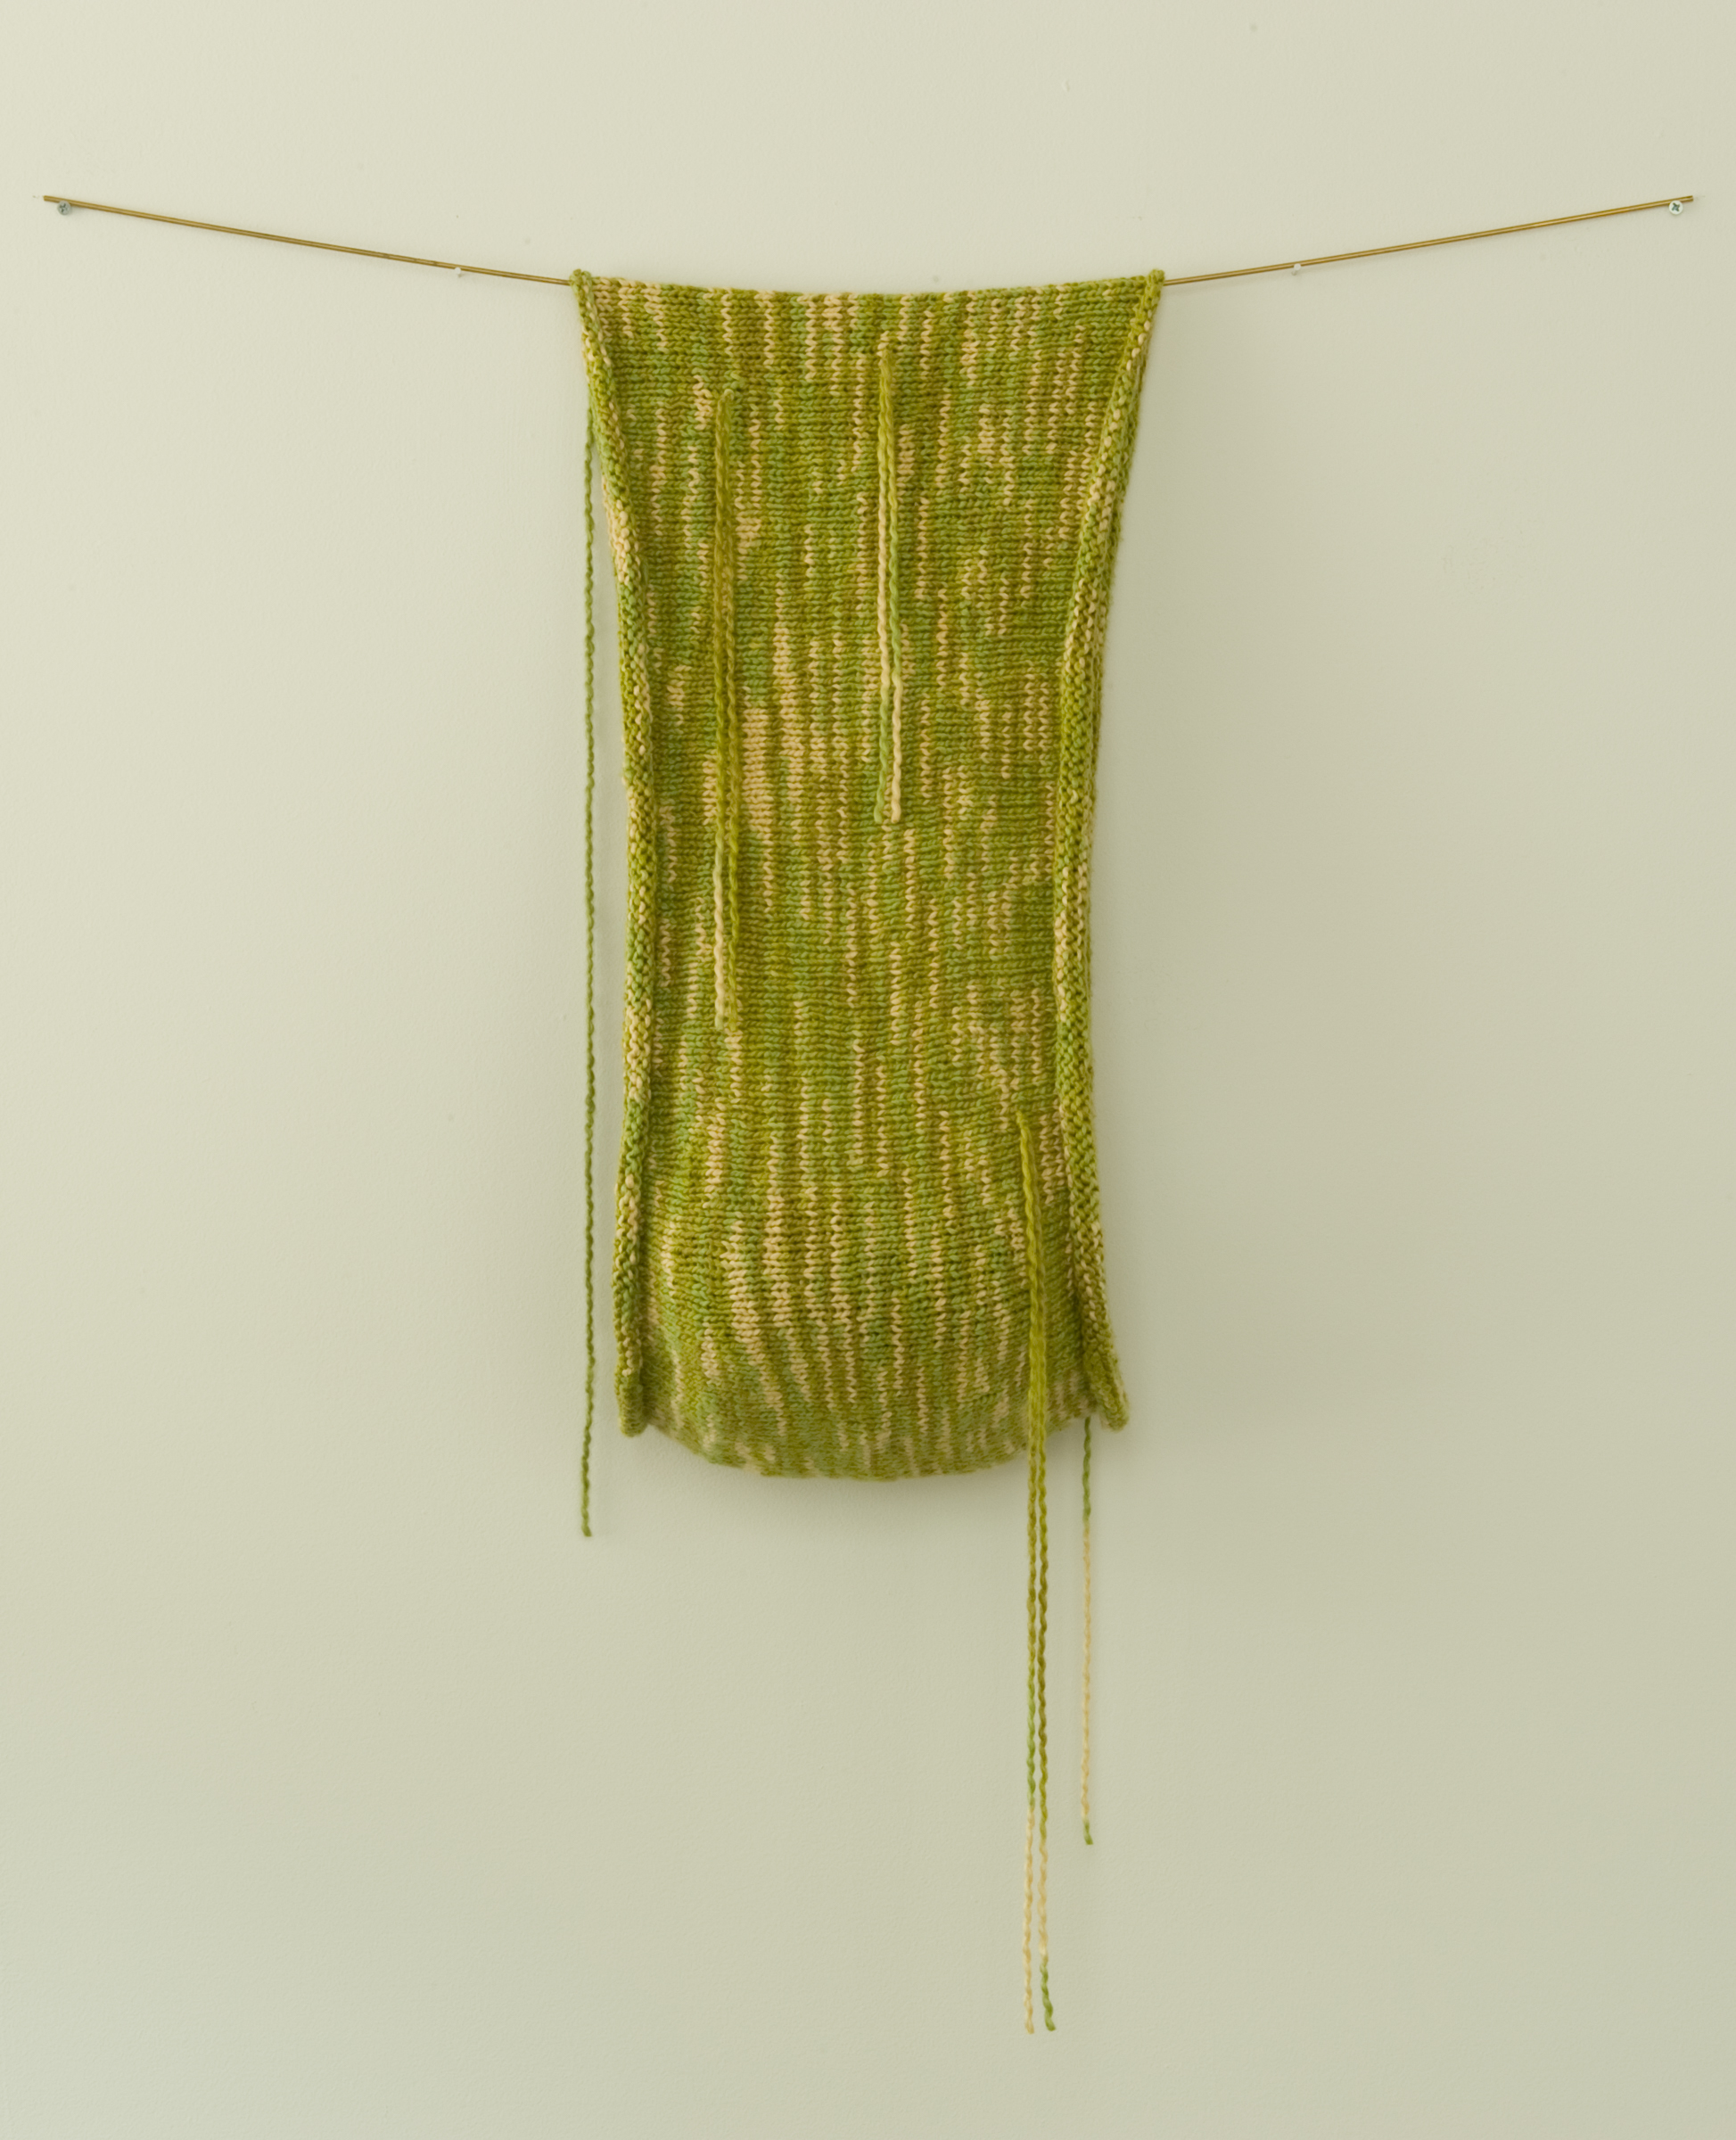 Samantha Stevens  | 2013  | hand knitted cotton | 30 x 12 x 6